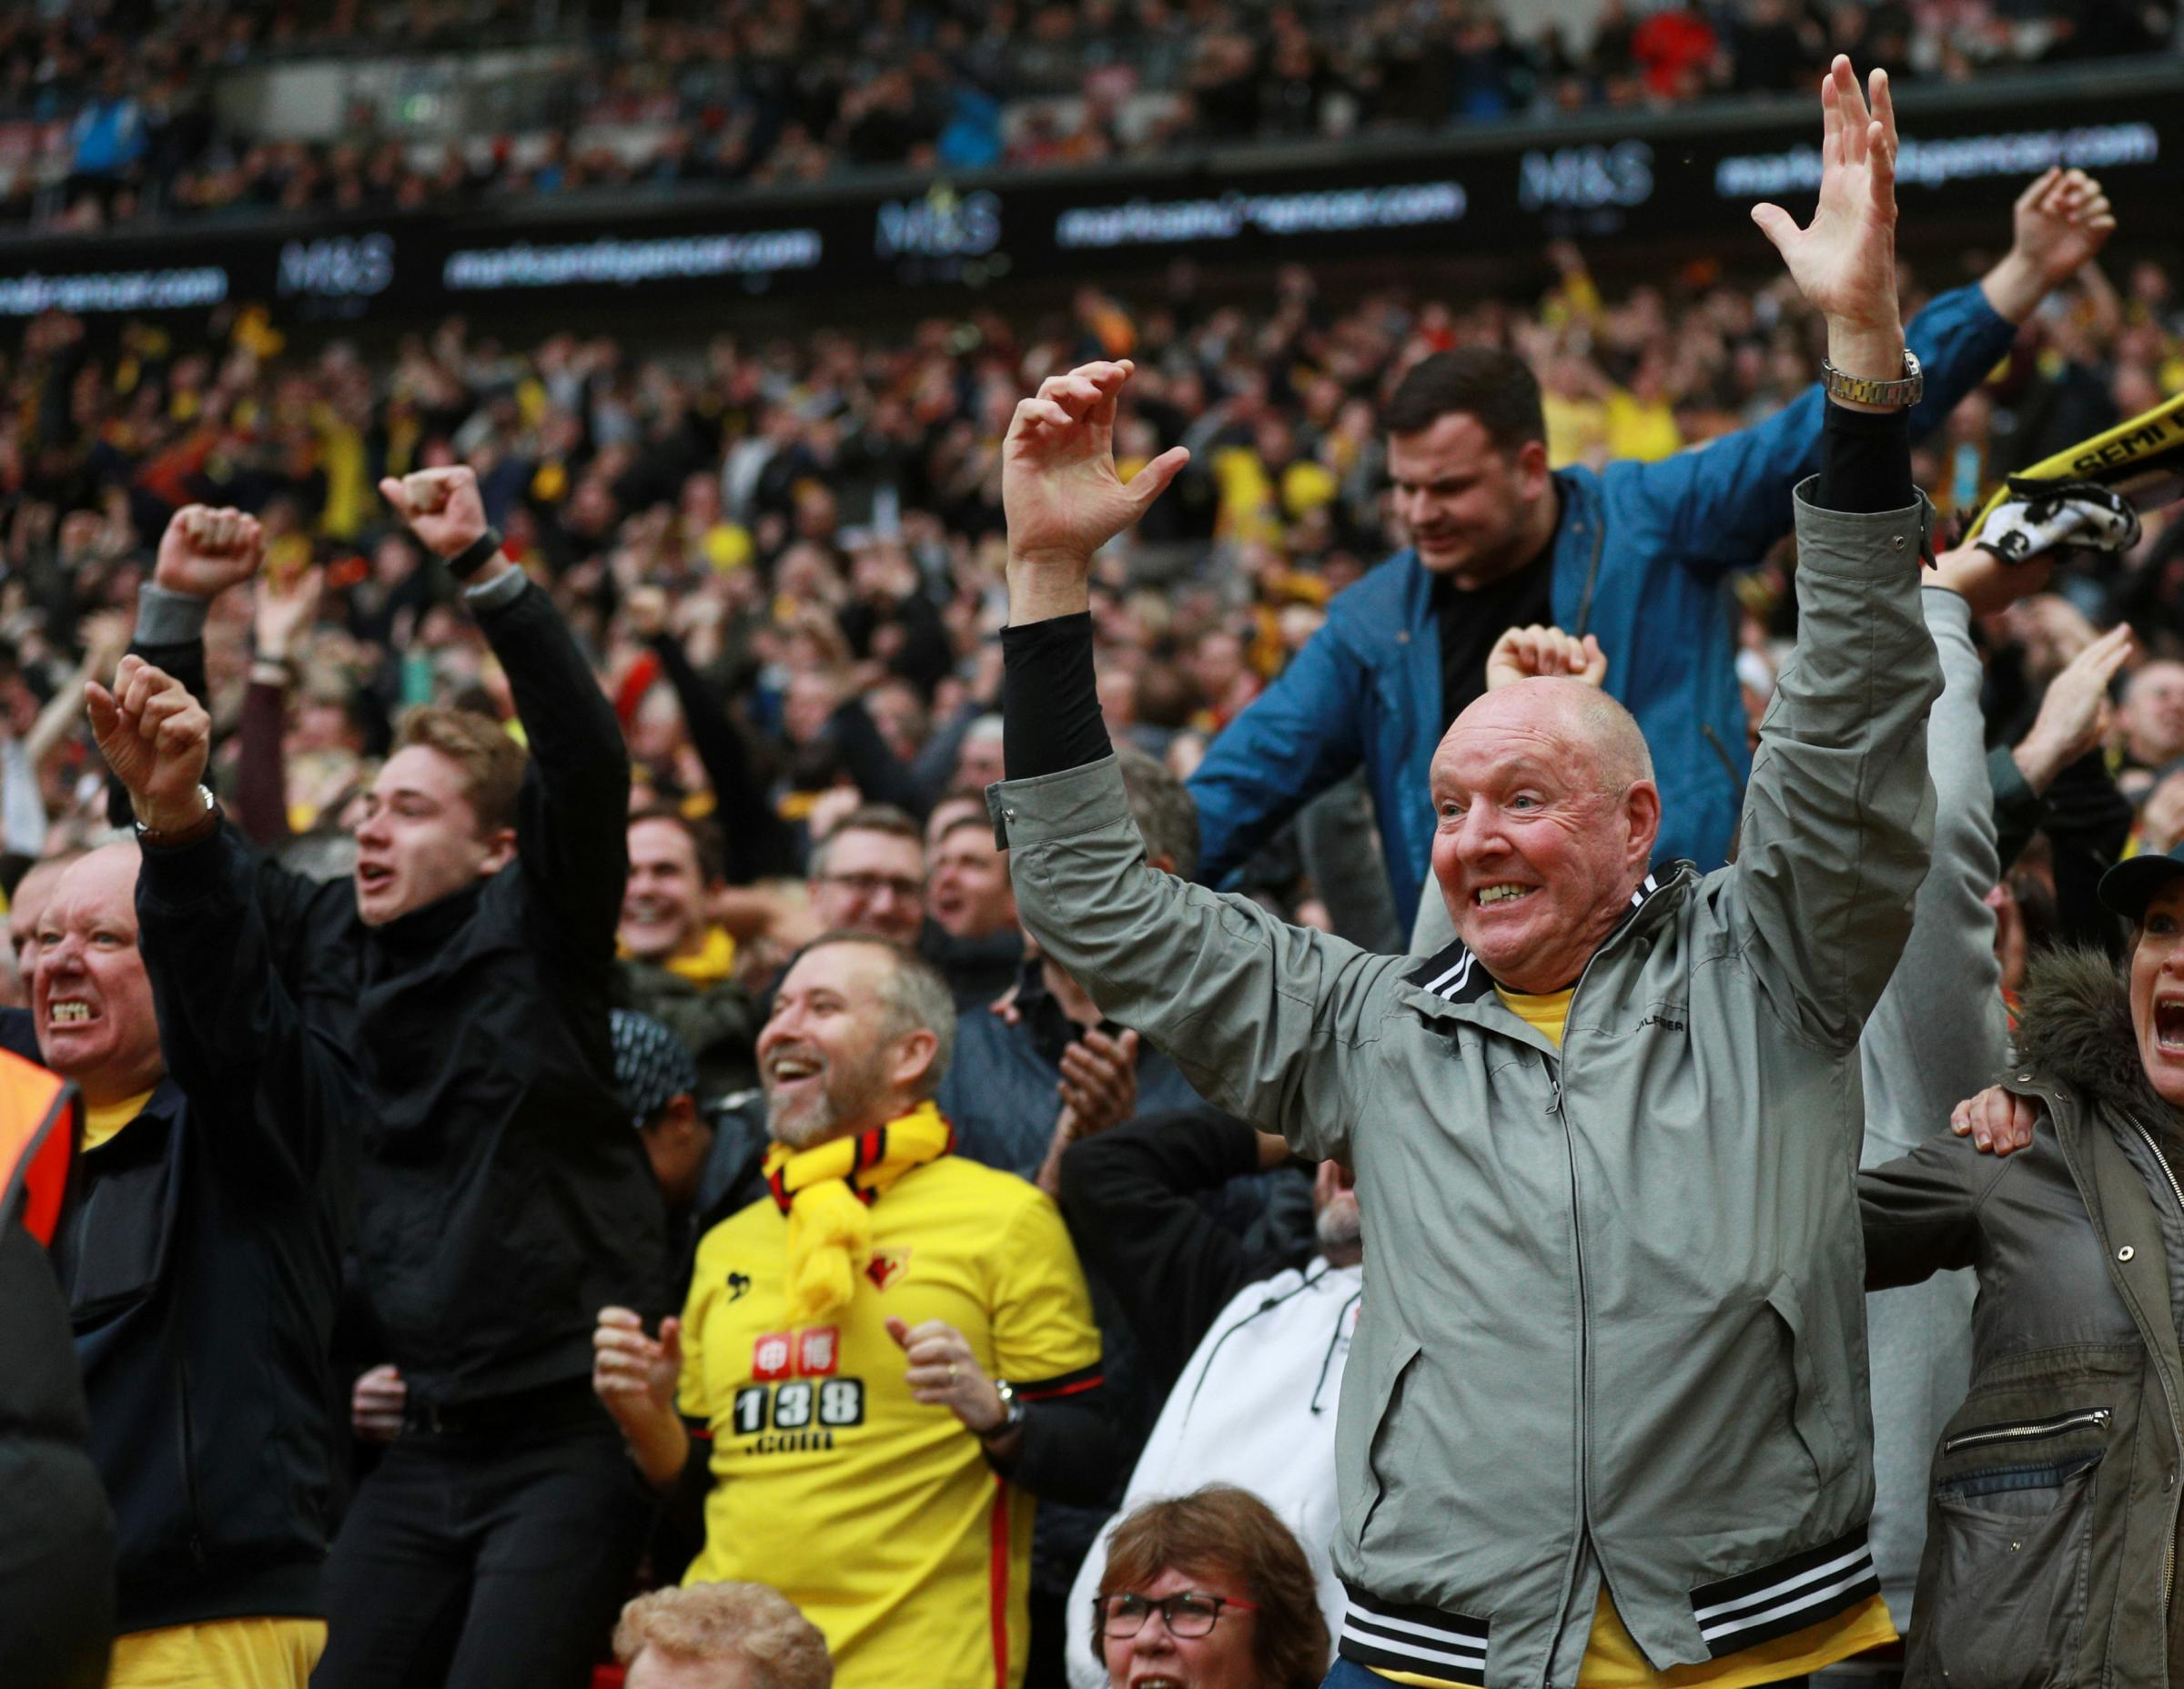 Watford fans celebrate at Wembley. Picture: Action Images